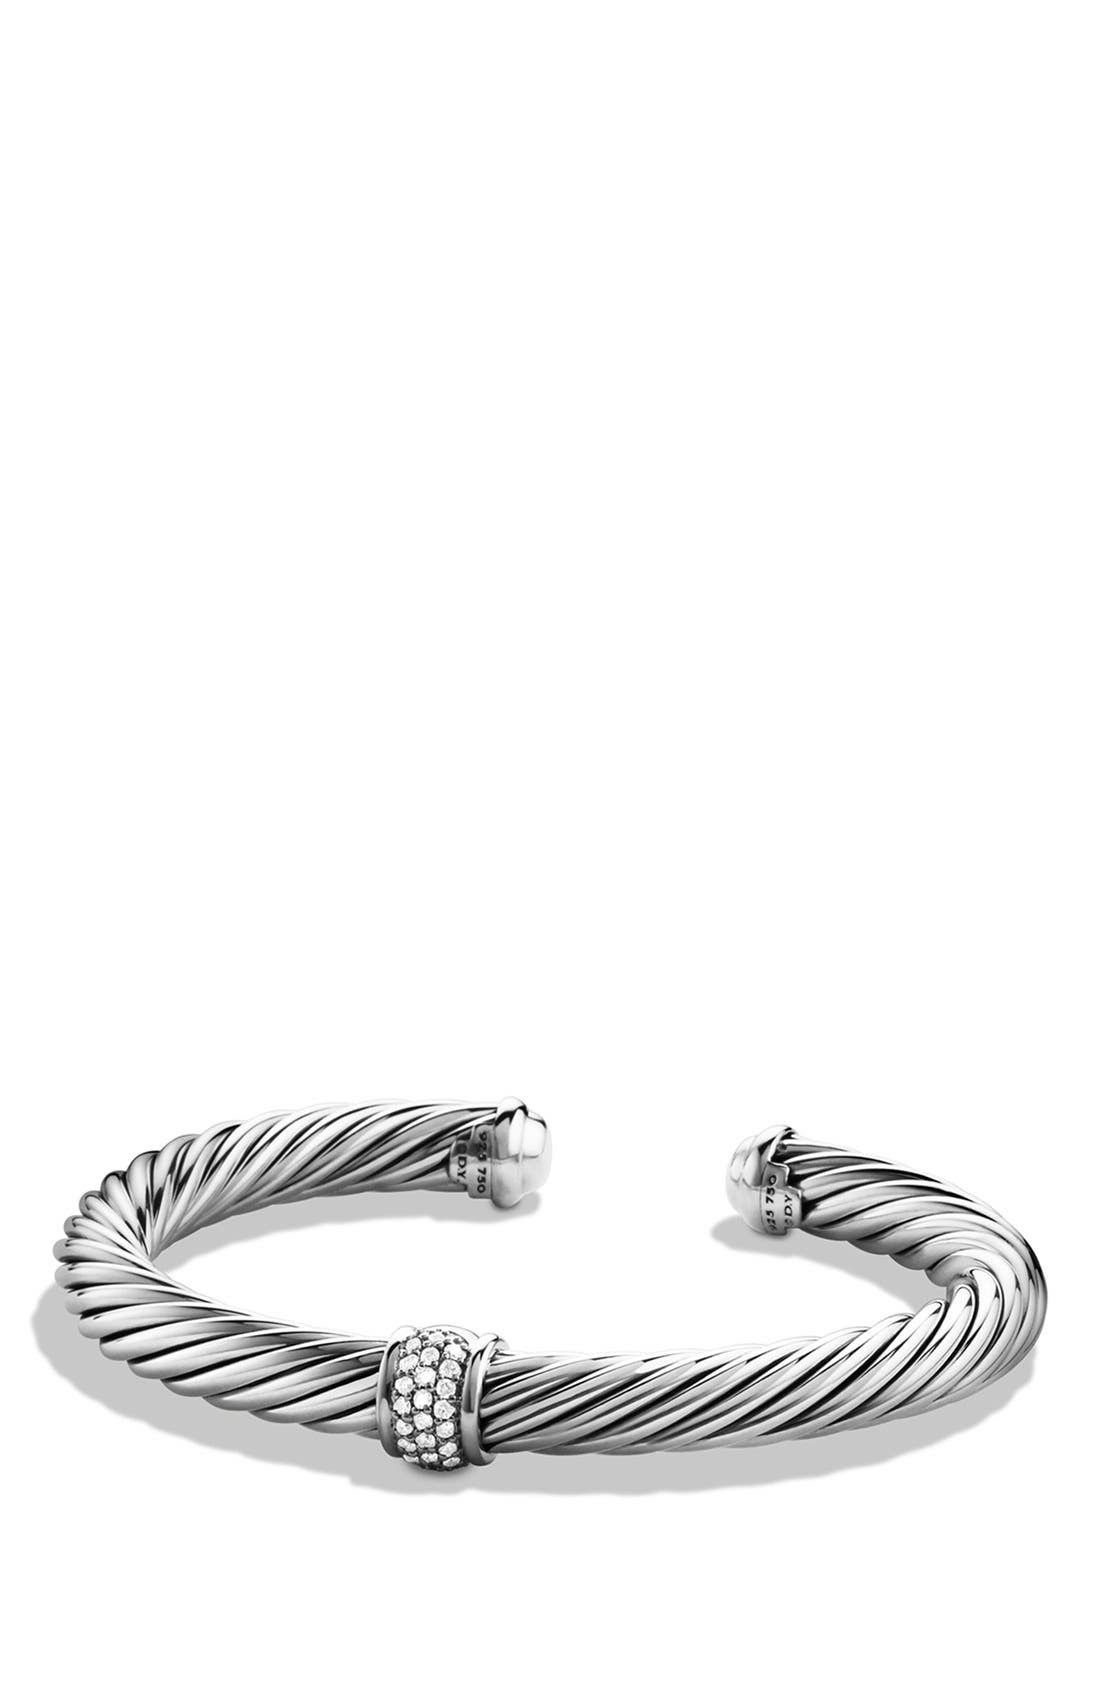 DAVID YURMAN Cable Classics Bracelet with Diamonds and White Gold